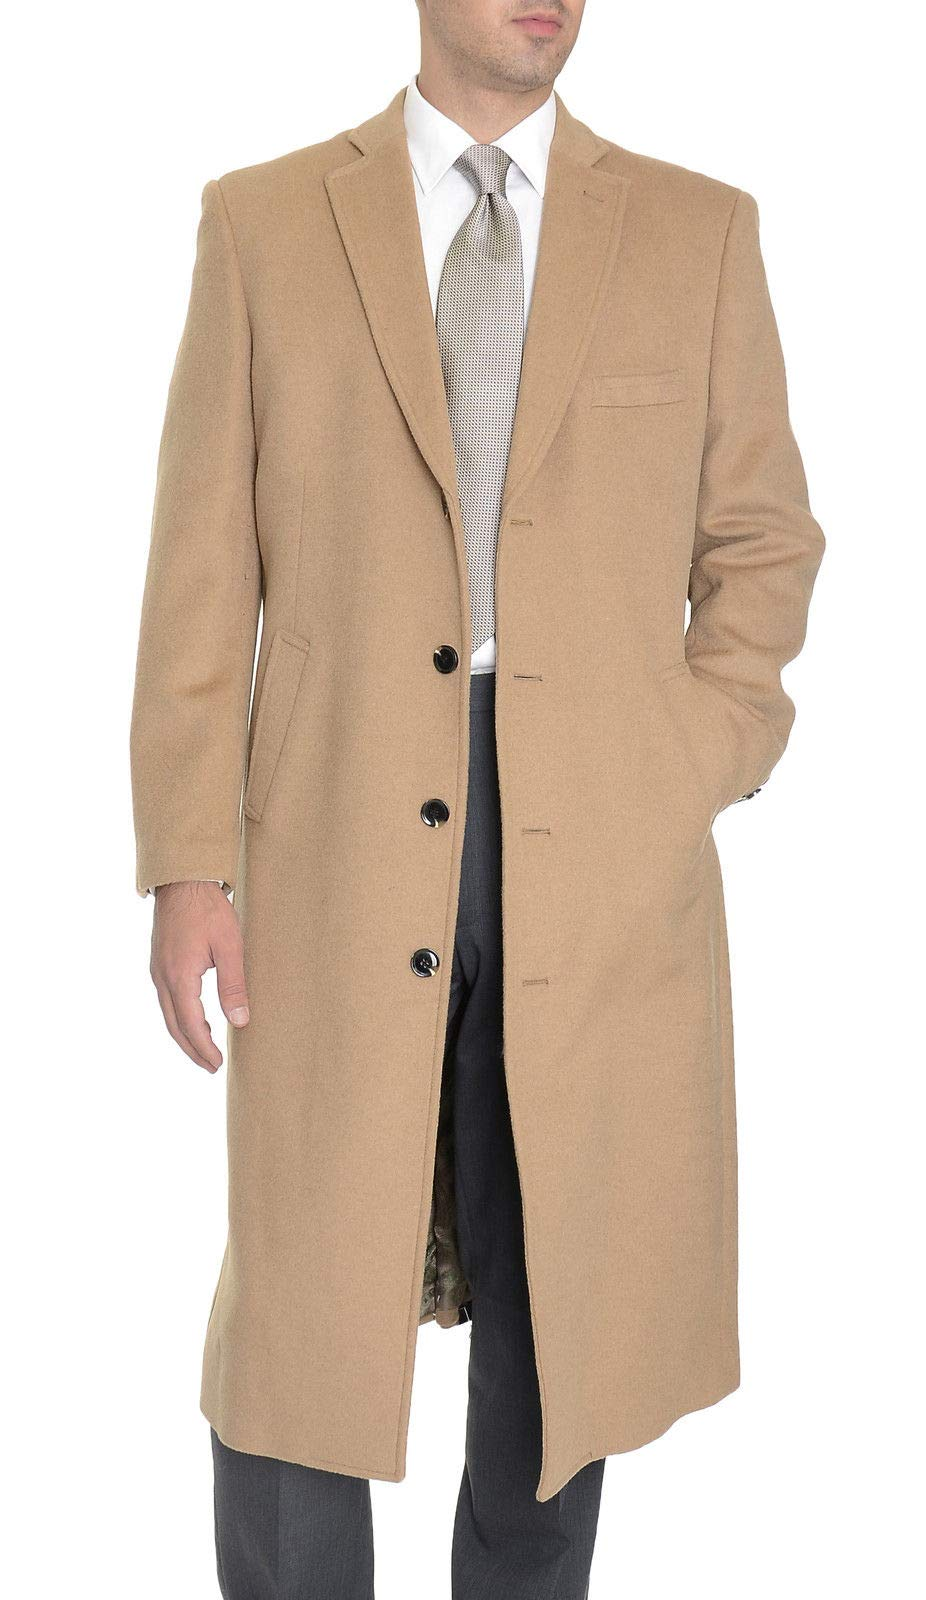 Men's Regular Fit Camel Tan Full Length Wool Cashmere Overcoat Topcoat by The Suit Depot